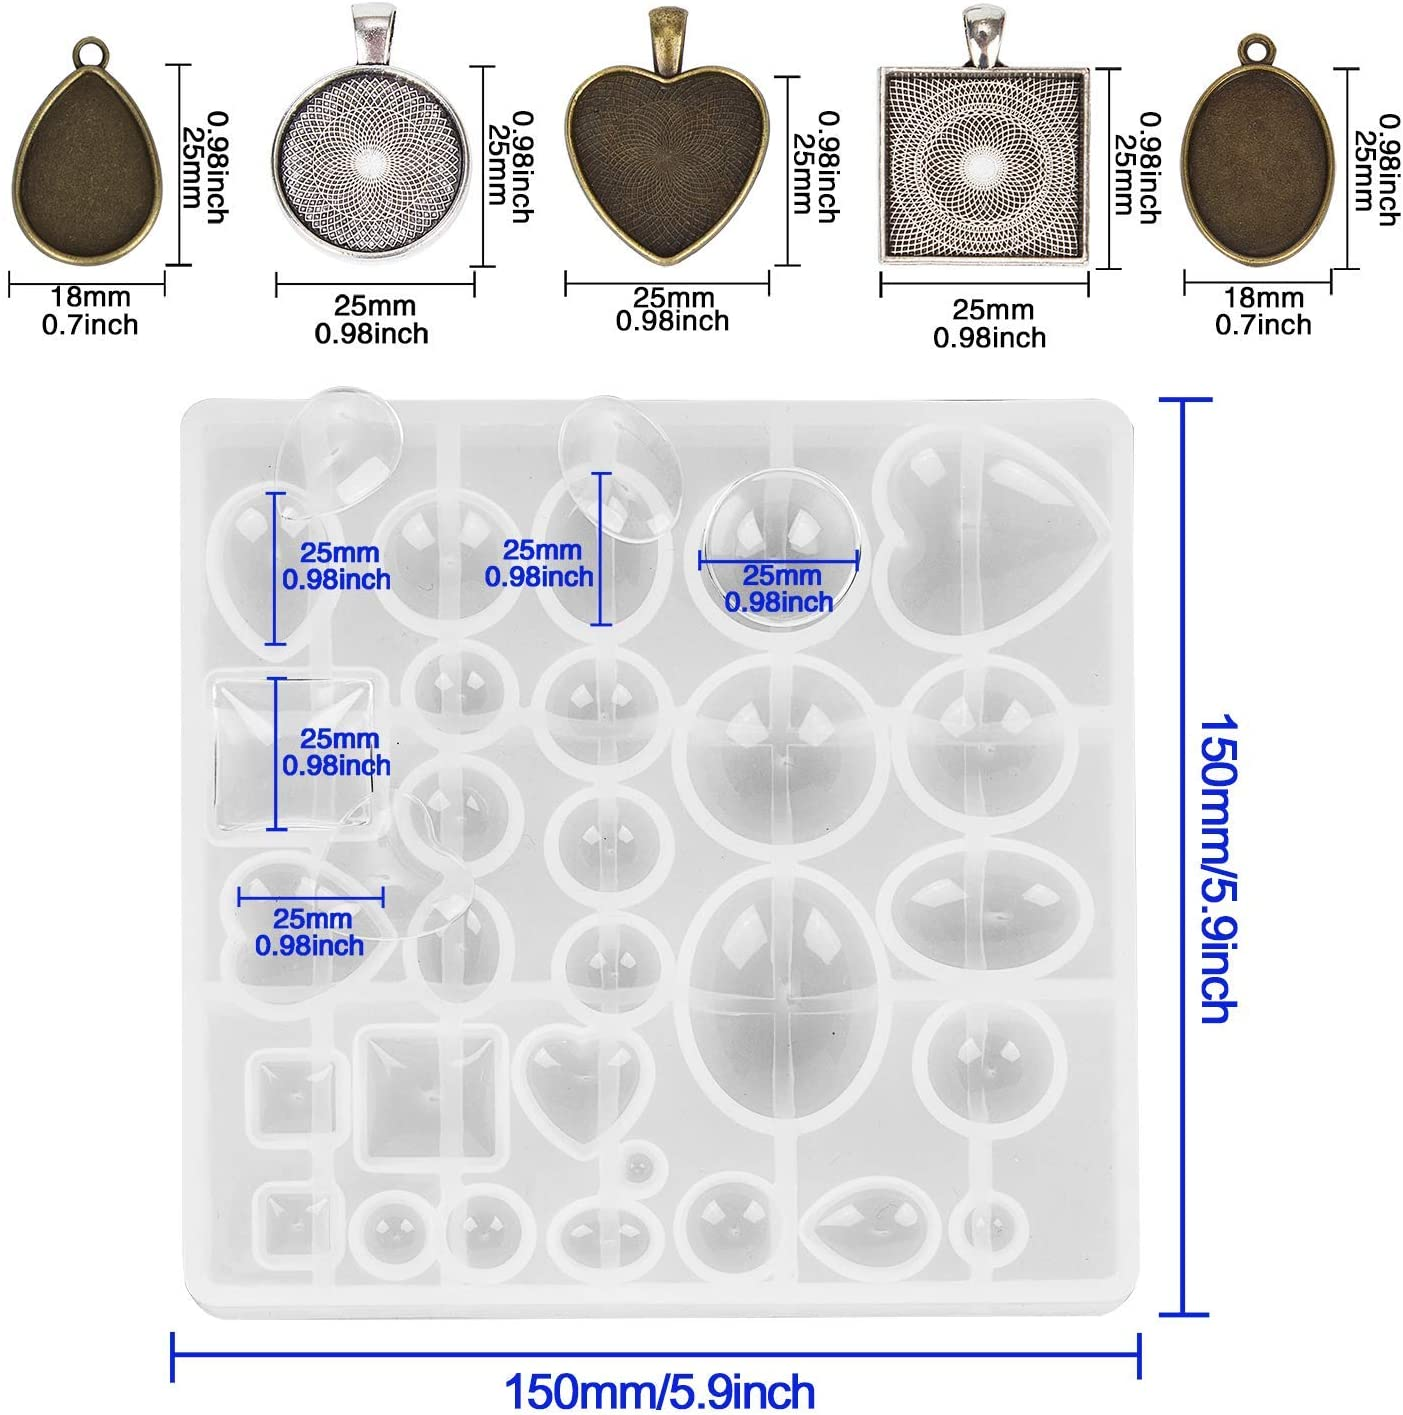 KisSealed 30 Pieces 5 Styles Pendant Trays-Round /& Square /& Heart /& Teardrop /& Oval and 1 Pcs Silicone Resin Jewelry Casting Molds for Pendant Crafting DIY Jewelry Gift Making